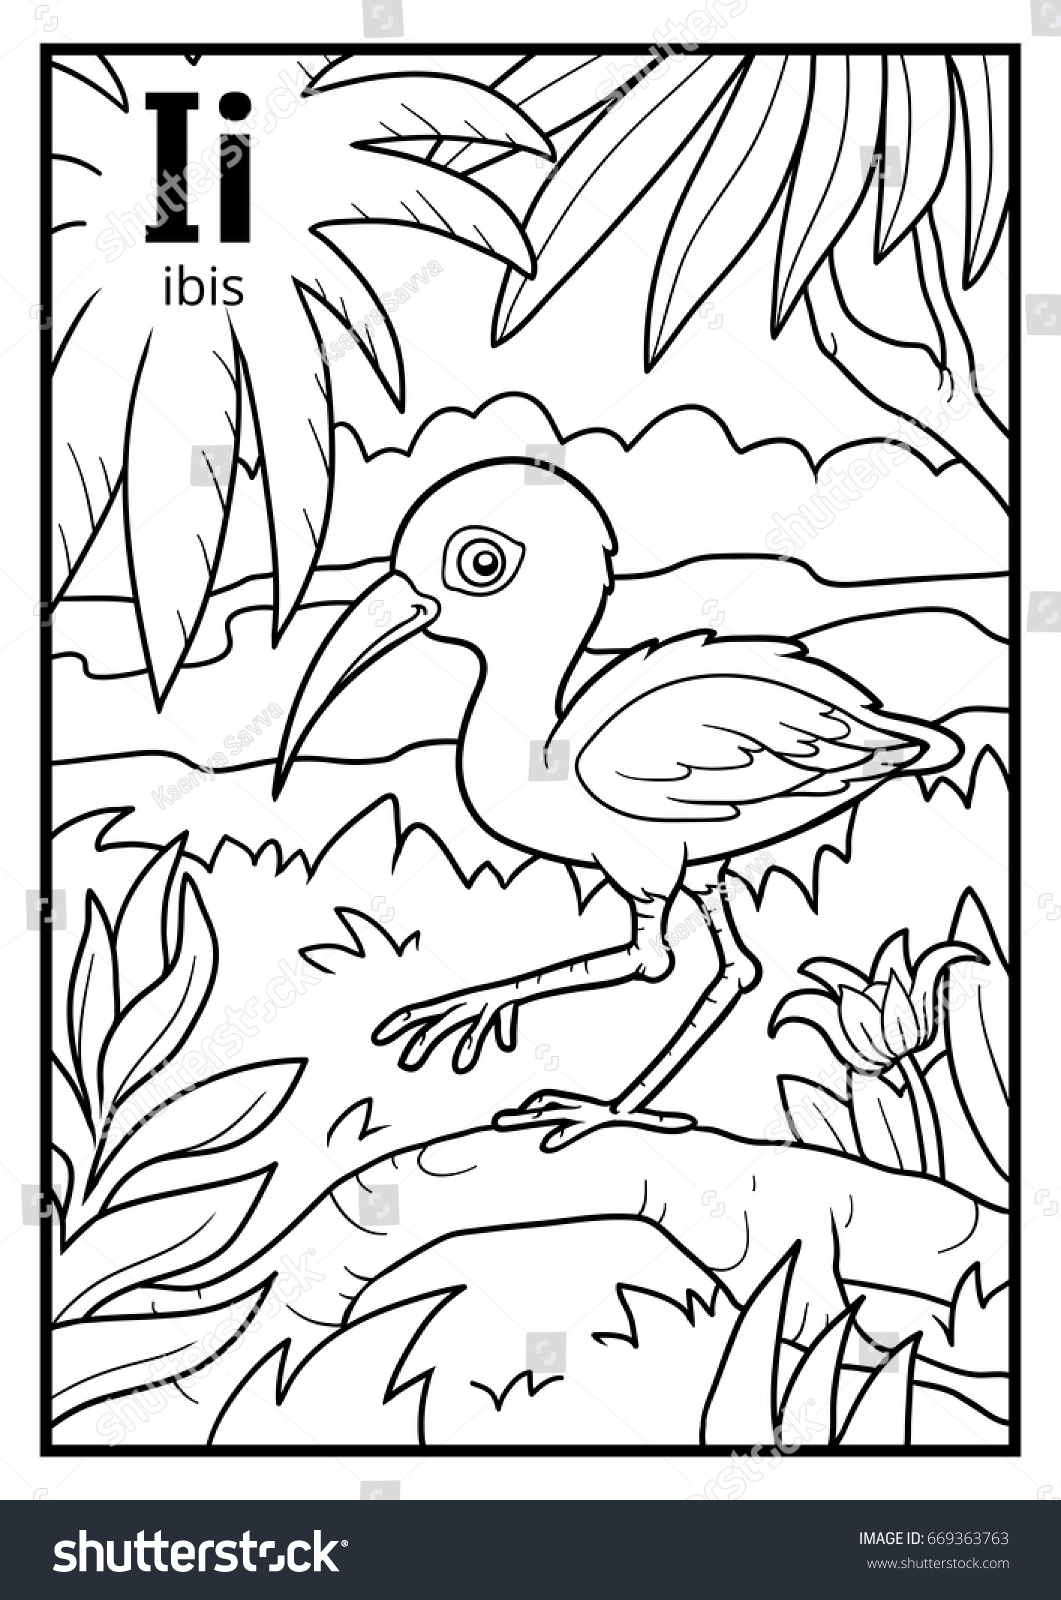 Coloring Book For Children Colorless Alphabet Letter I Ibis